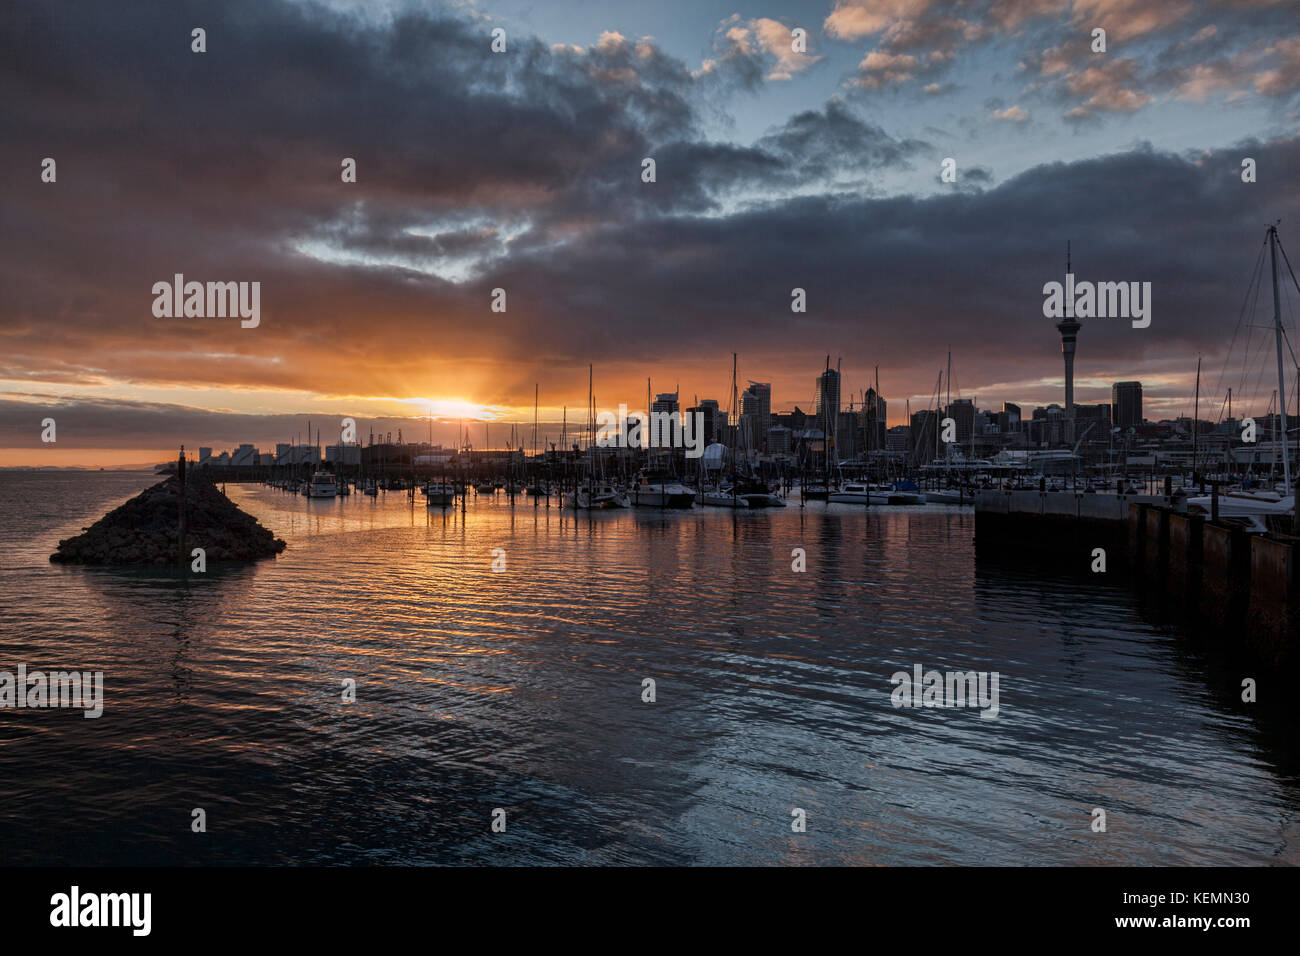 Sunrise over the city of Auckland and Westhaven Marina, New Zealand. Stock Photo